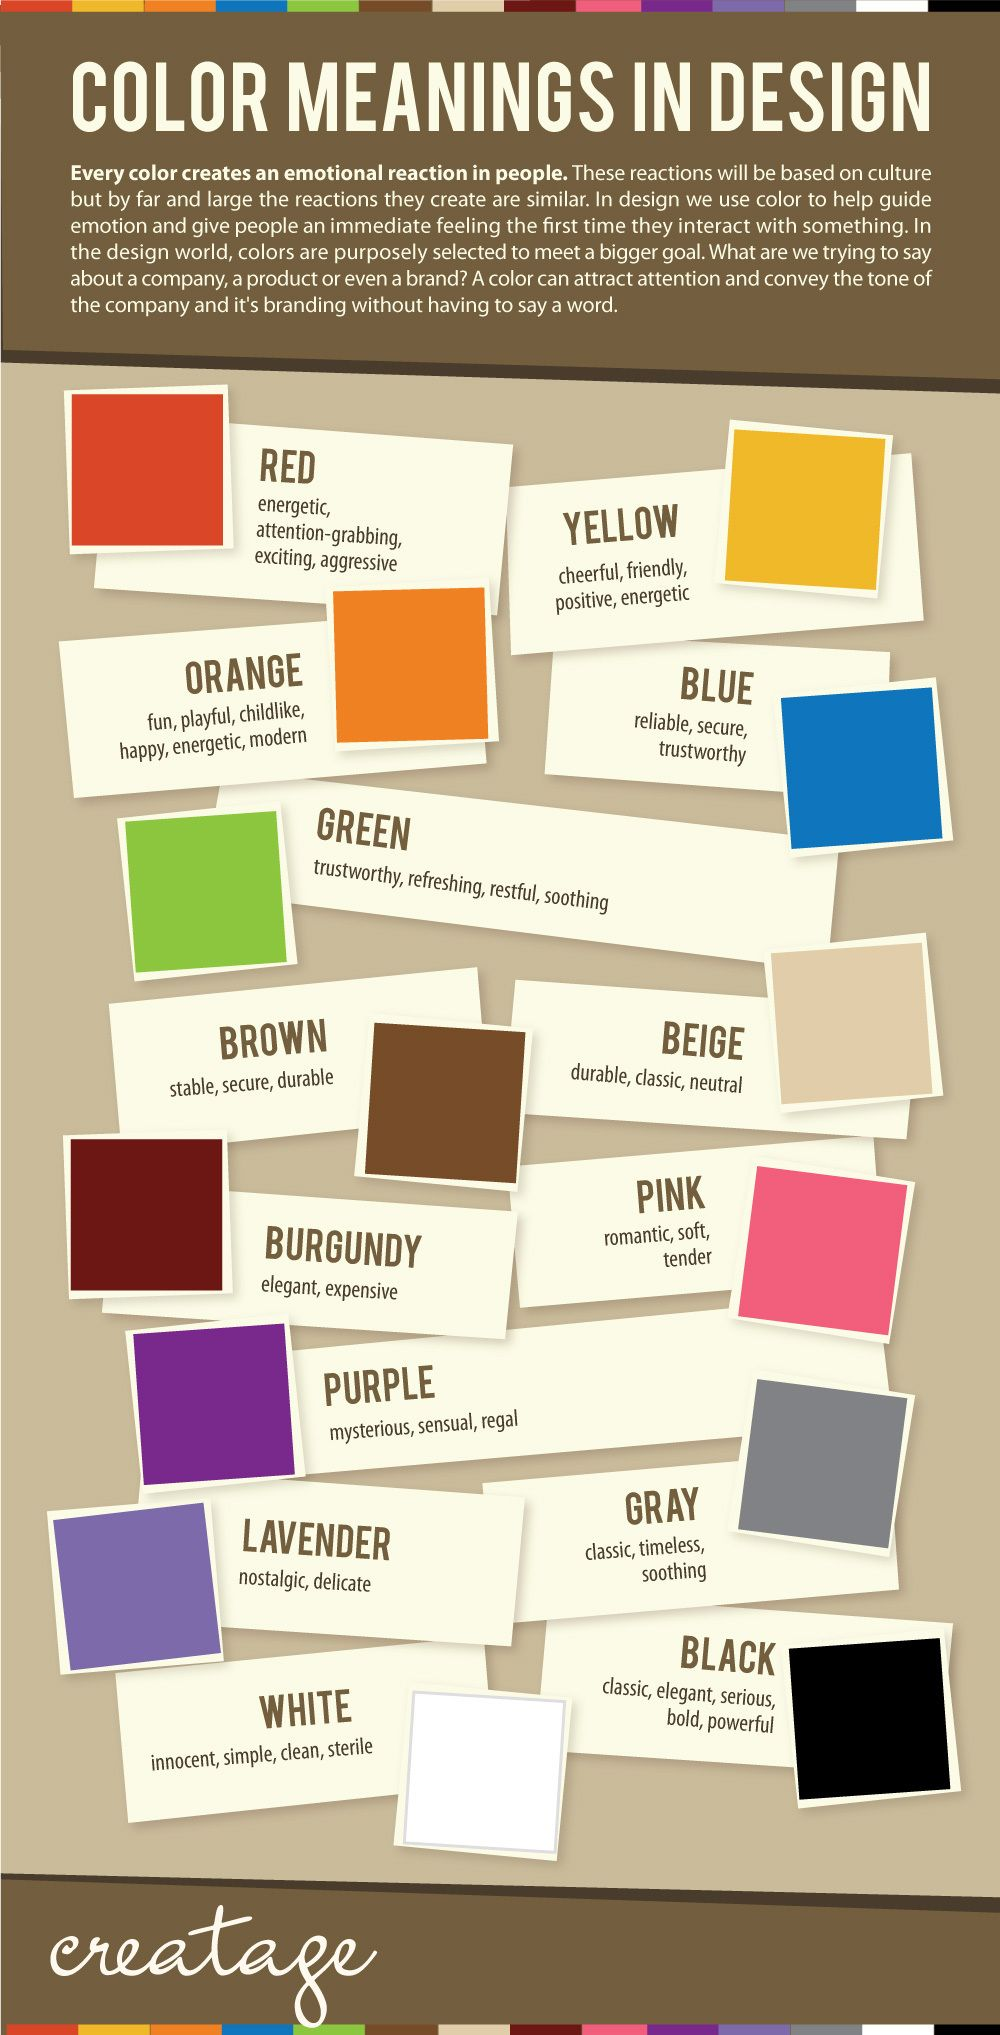 Arte Significado De Los Colores Colores En Diseño Infografia Color Meanings In Design